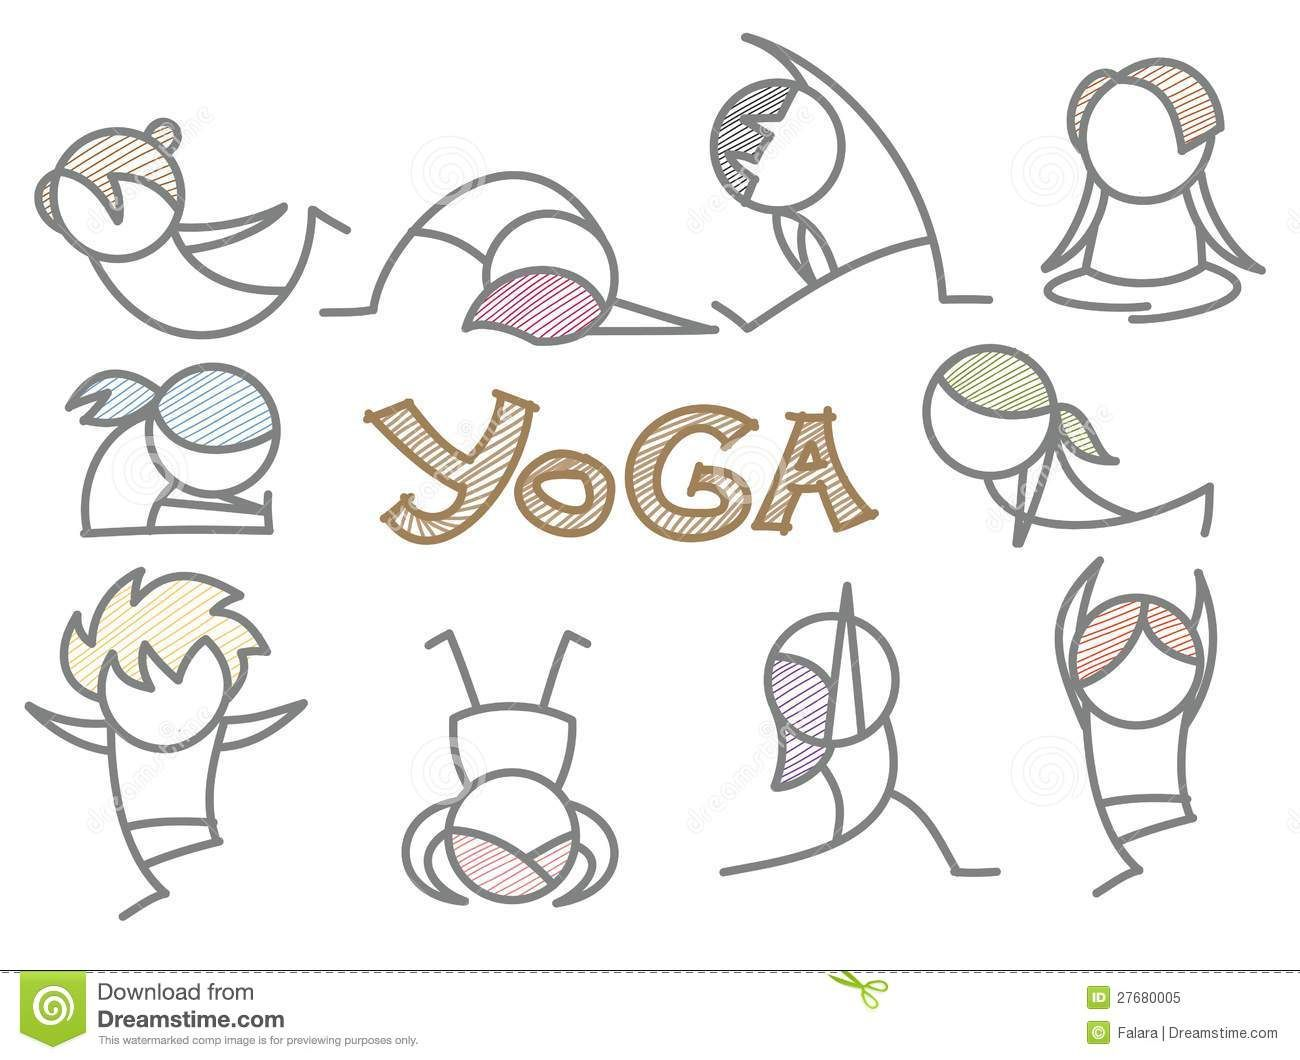 Yoga Cartoon Stock Photos Images Pictures 1 375 Images Yoga Cartoon Line Art Vector Line Art